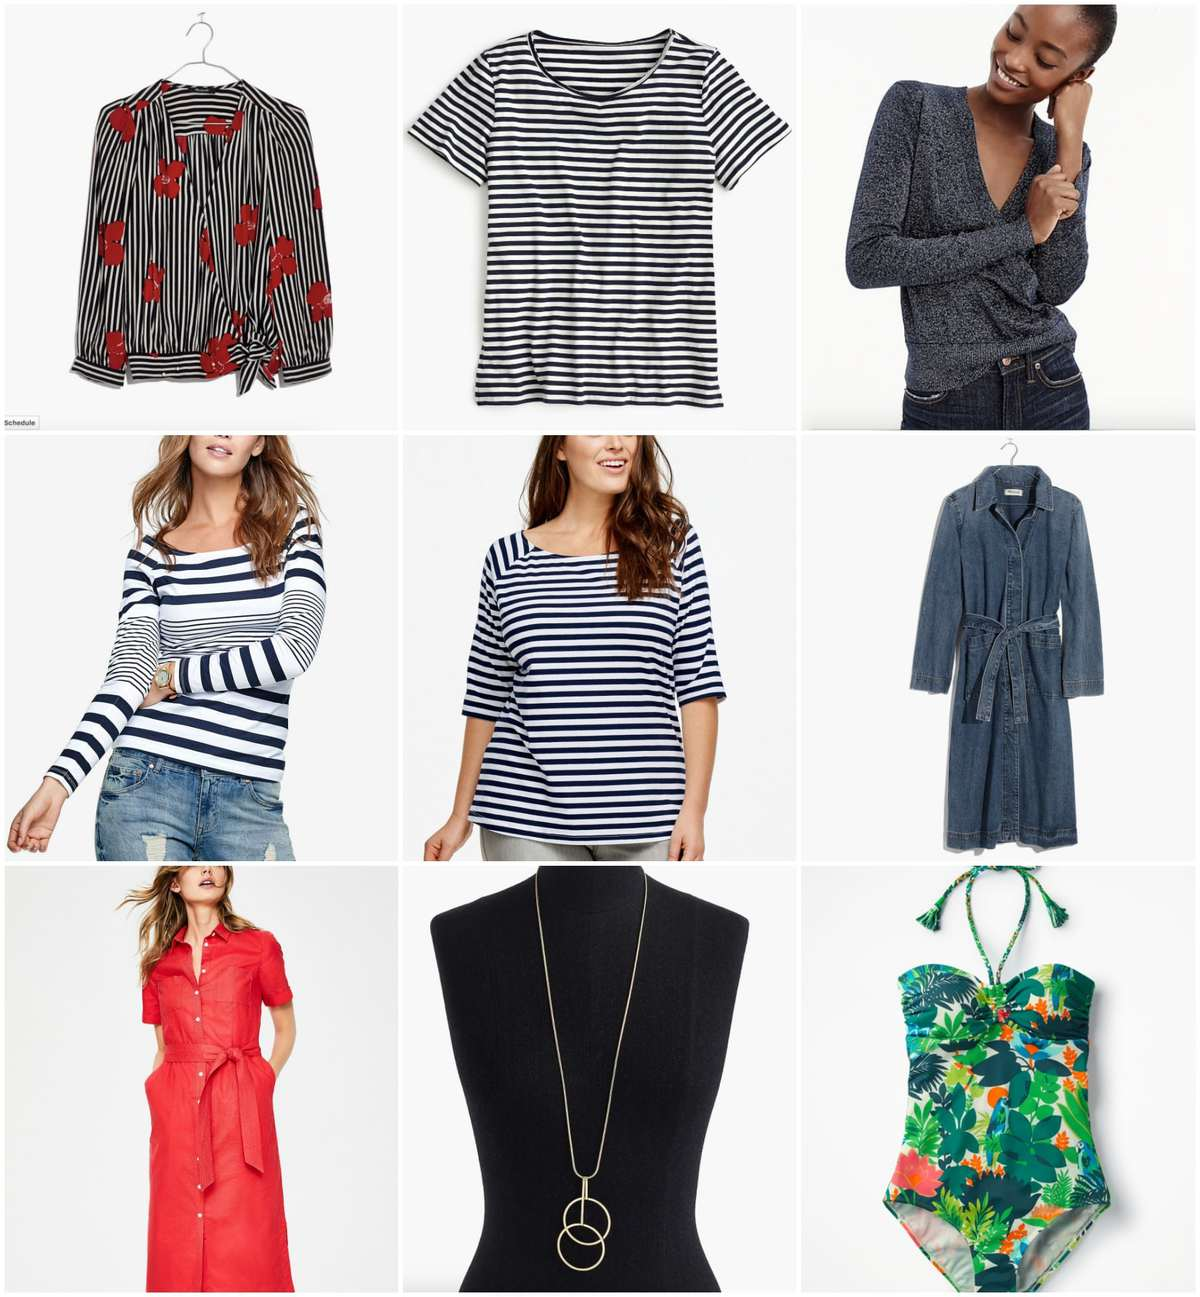 957bd9e8818 Shopping Hits and Misses  Madewell